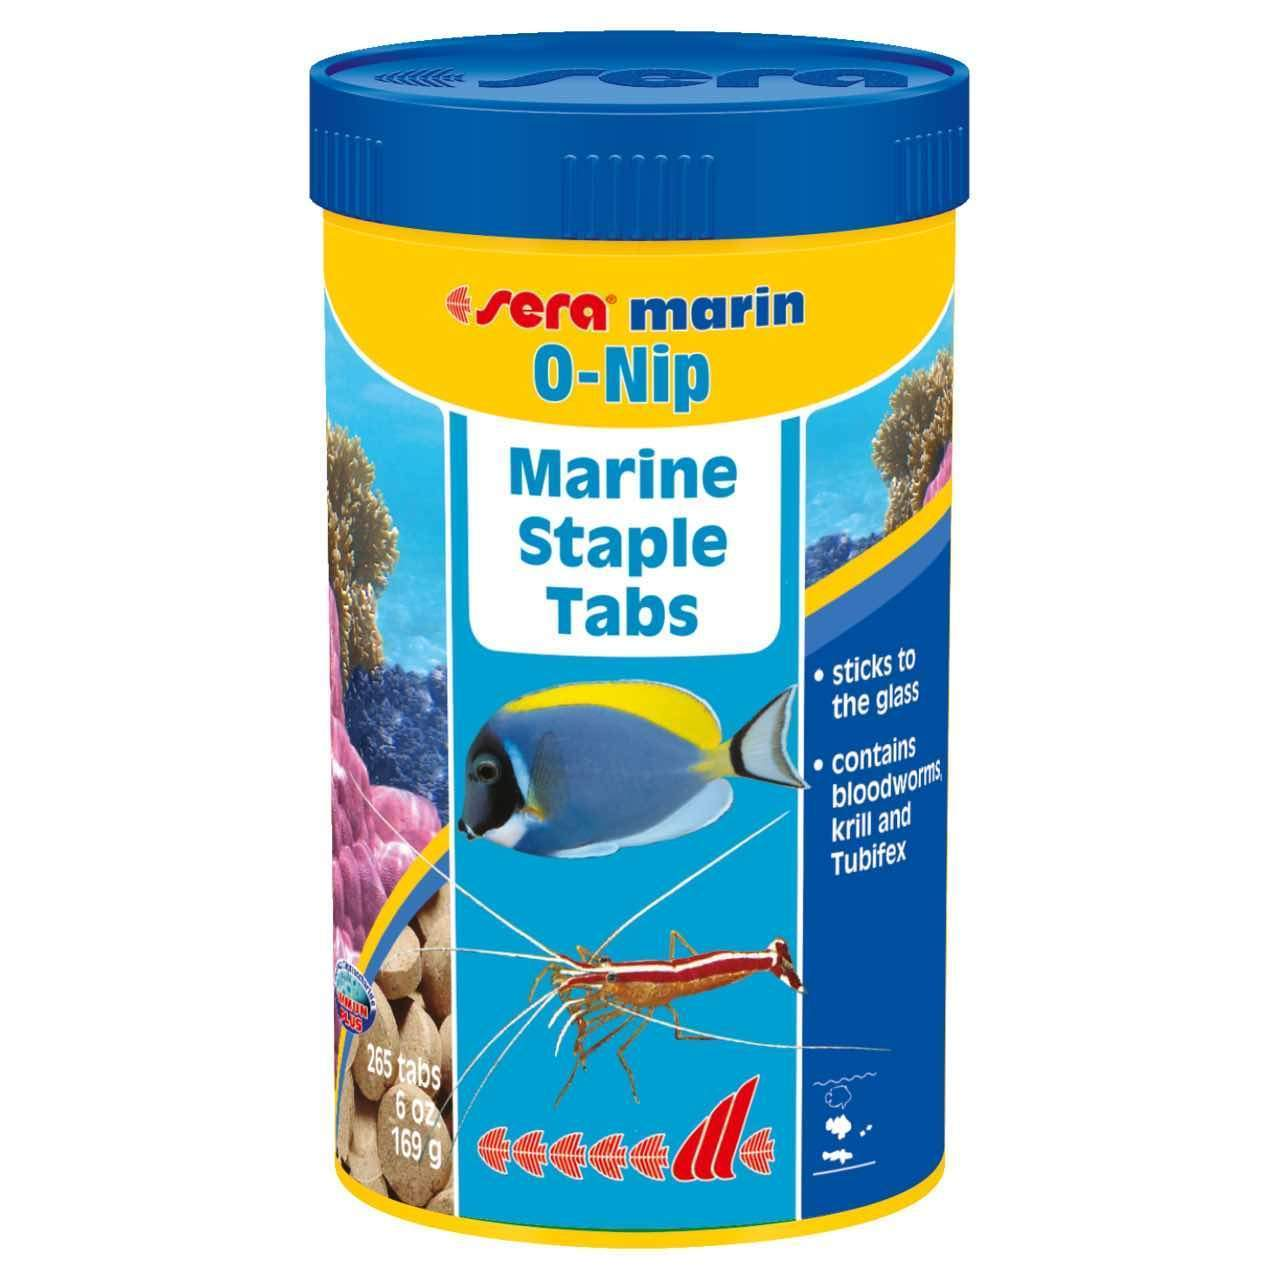 Saltwater Fish Food Tabs O-Nip Marine Staple Tabs - Sera